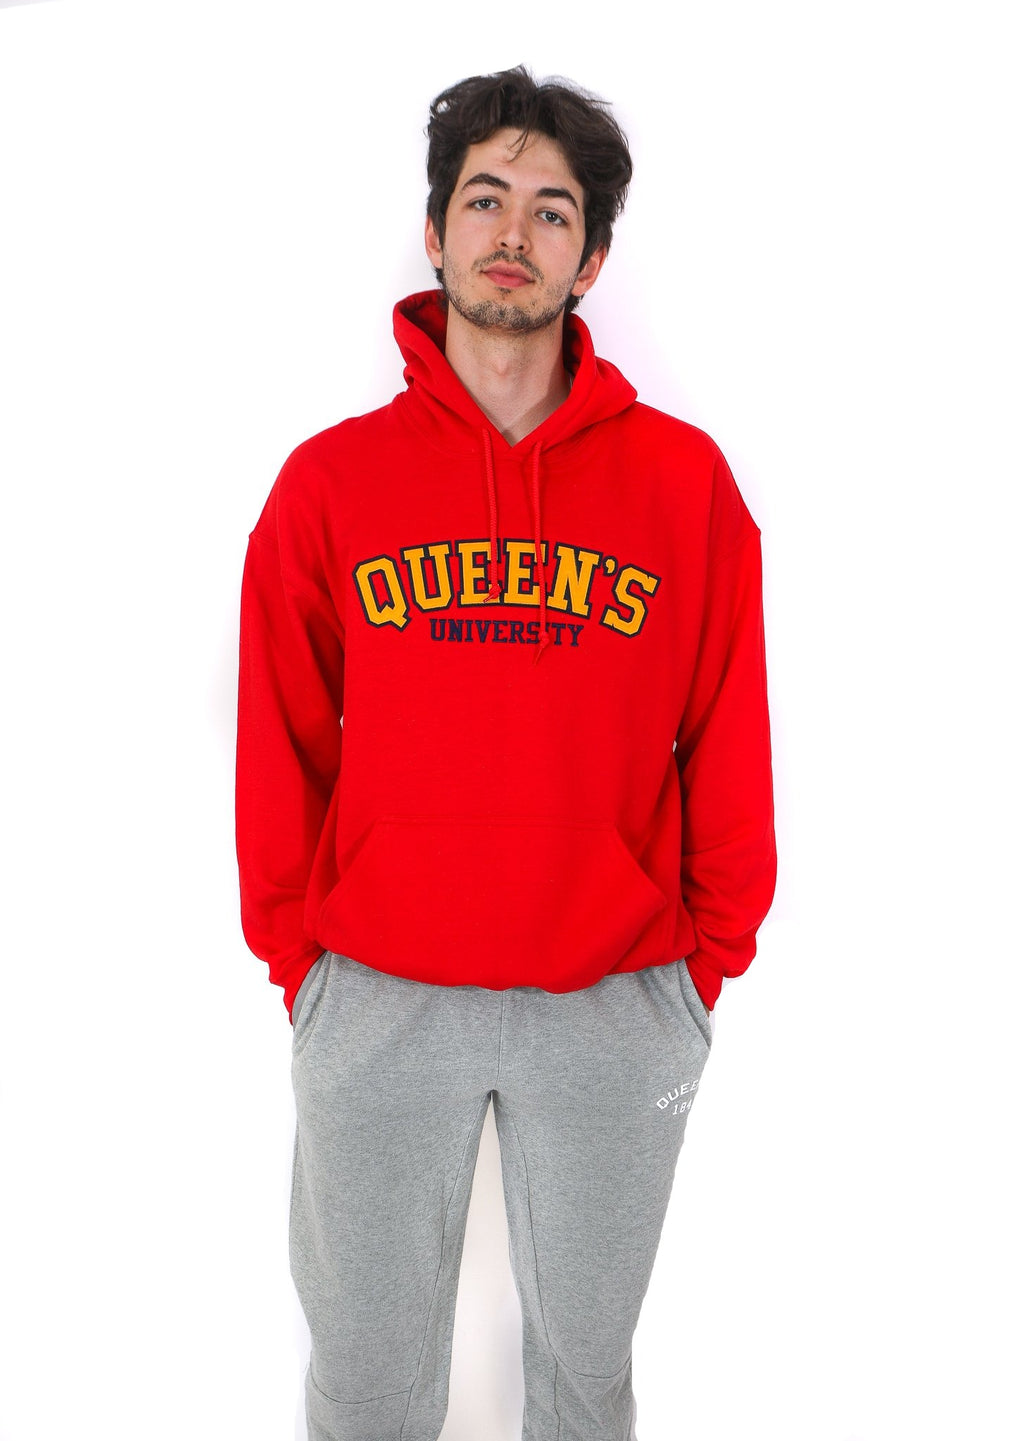 Front view of red hoodie with yellow Queen's logo